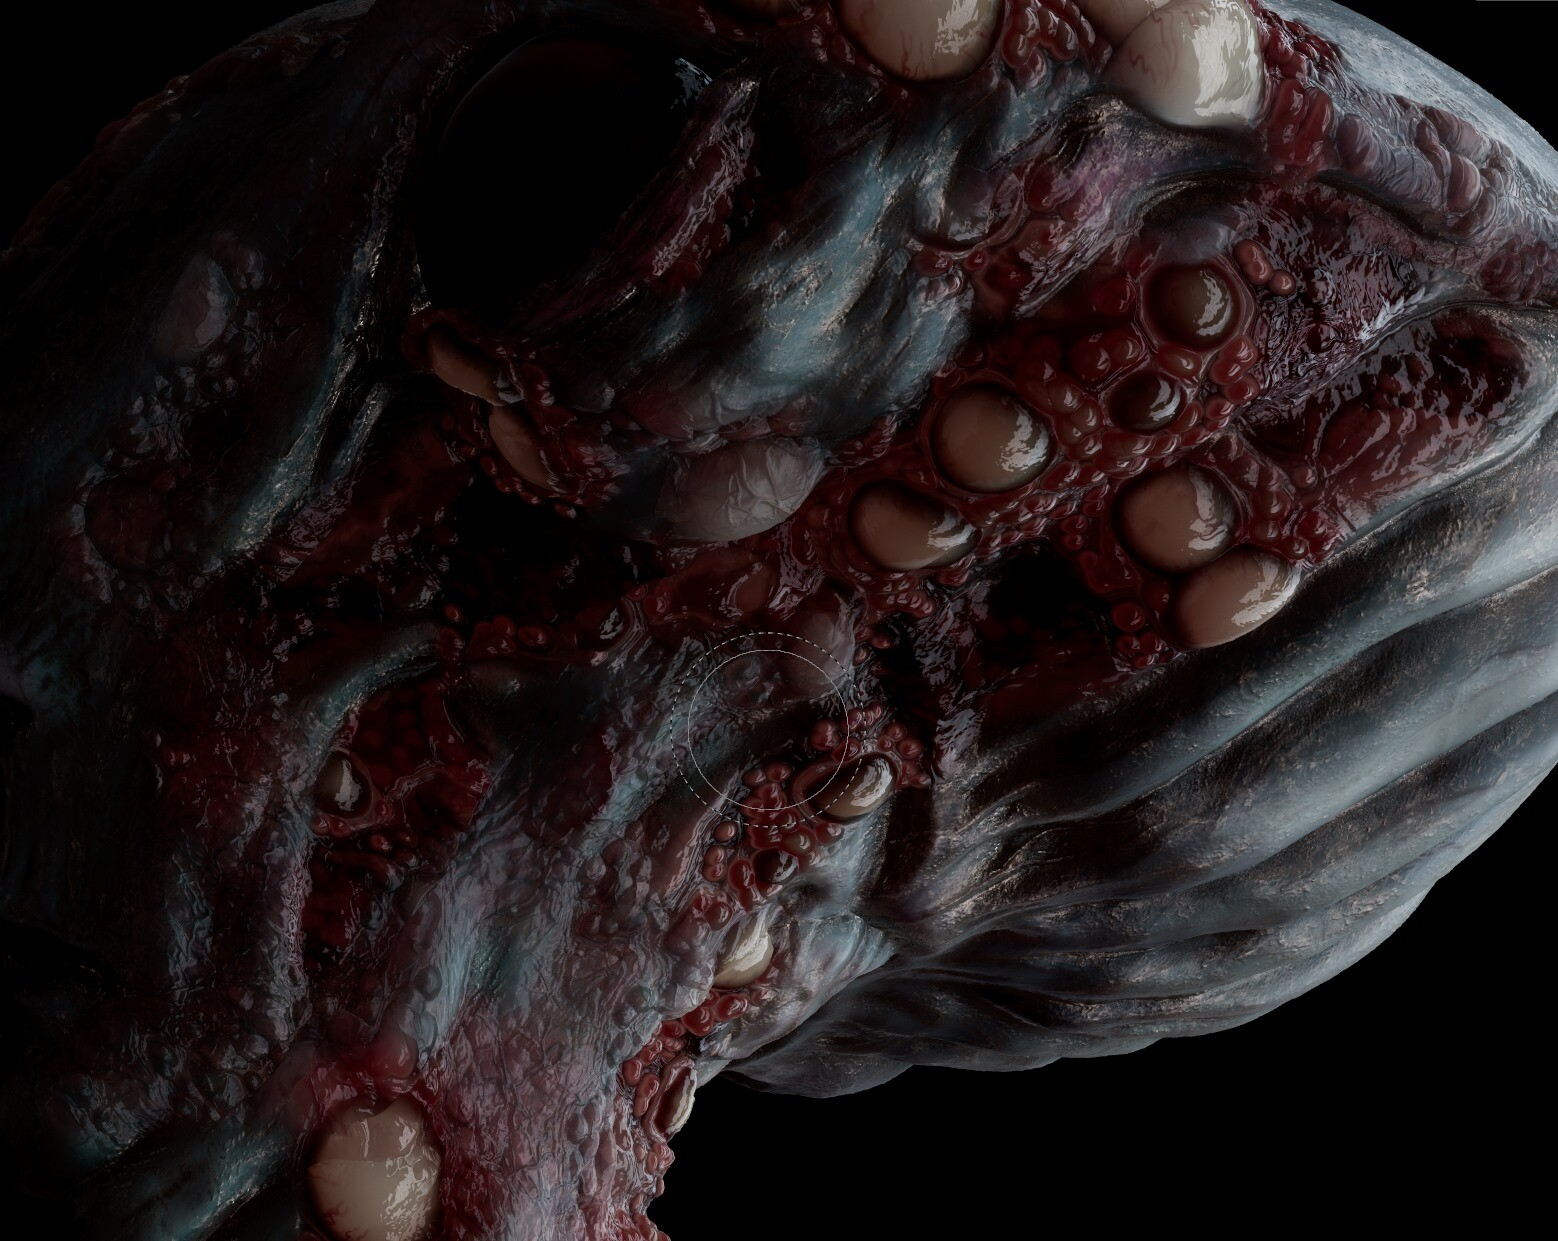 Skin Disfunction - Final procedural Material